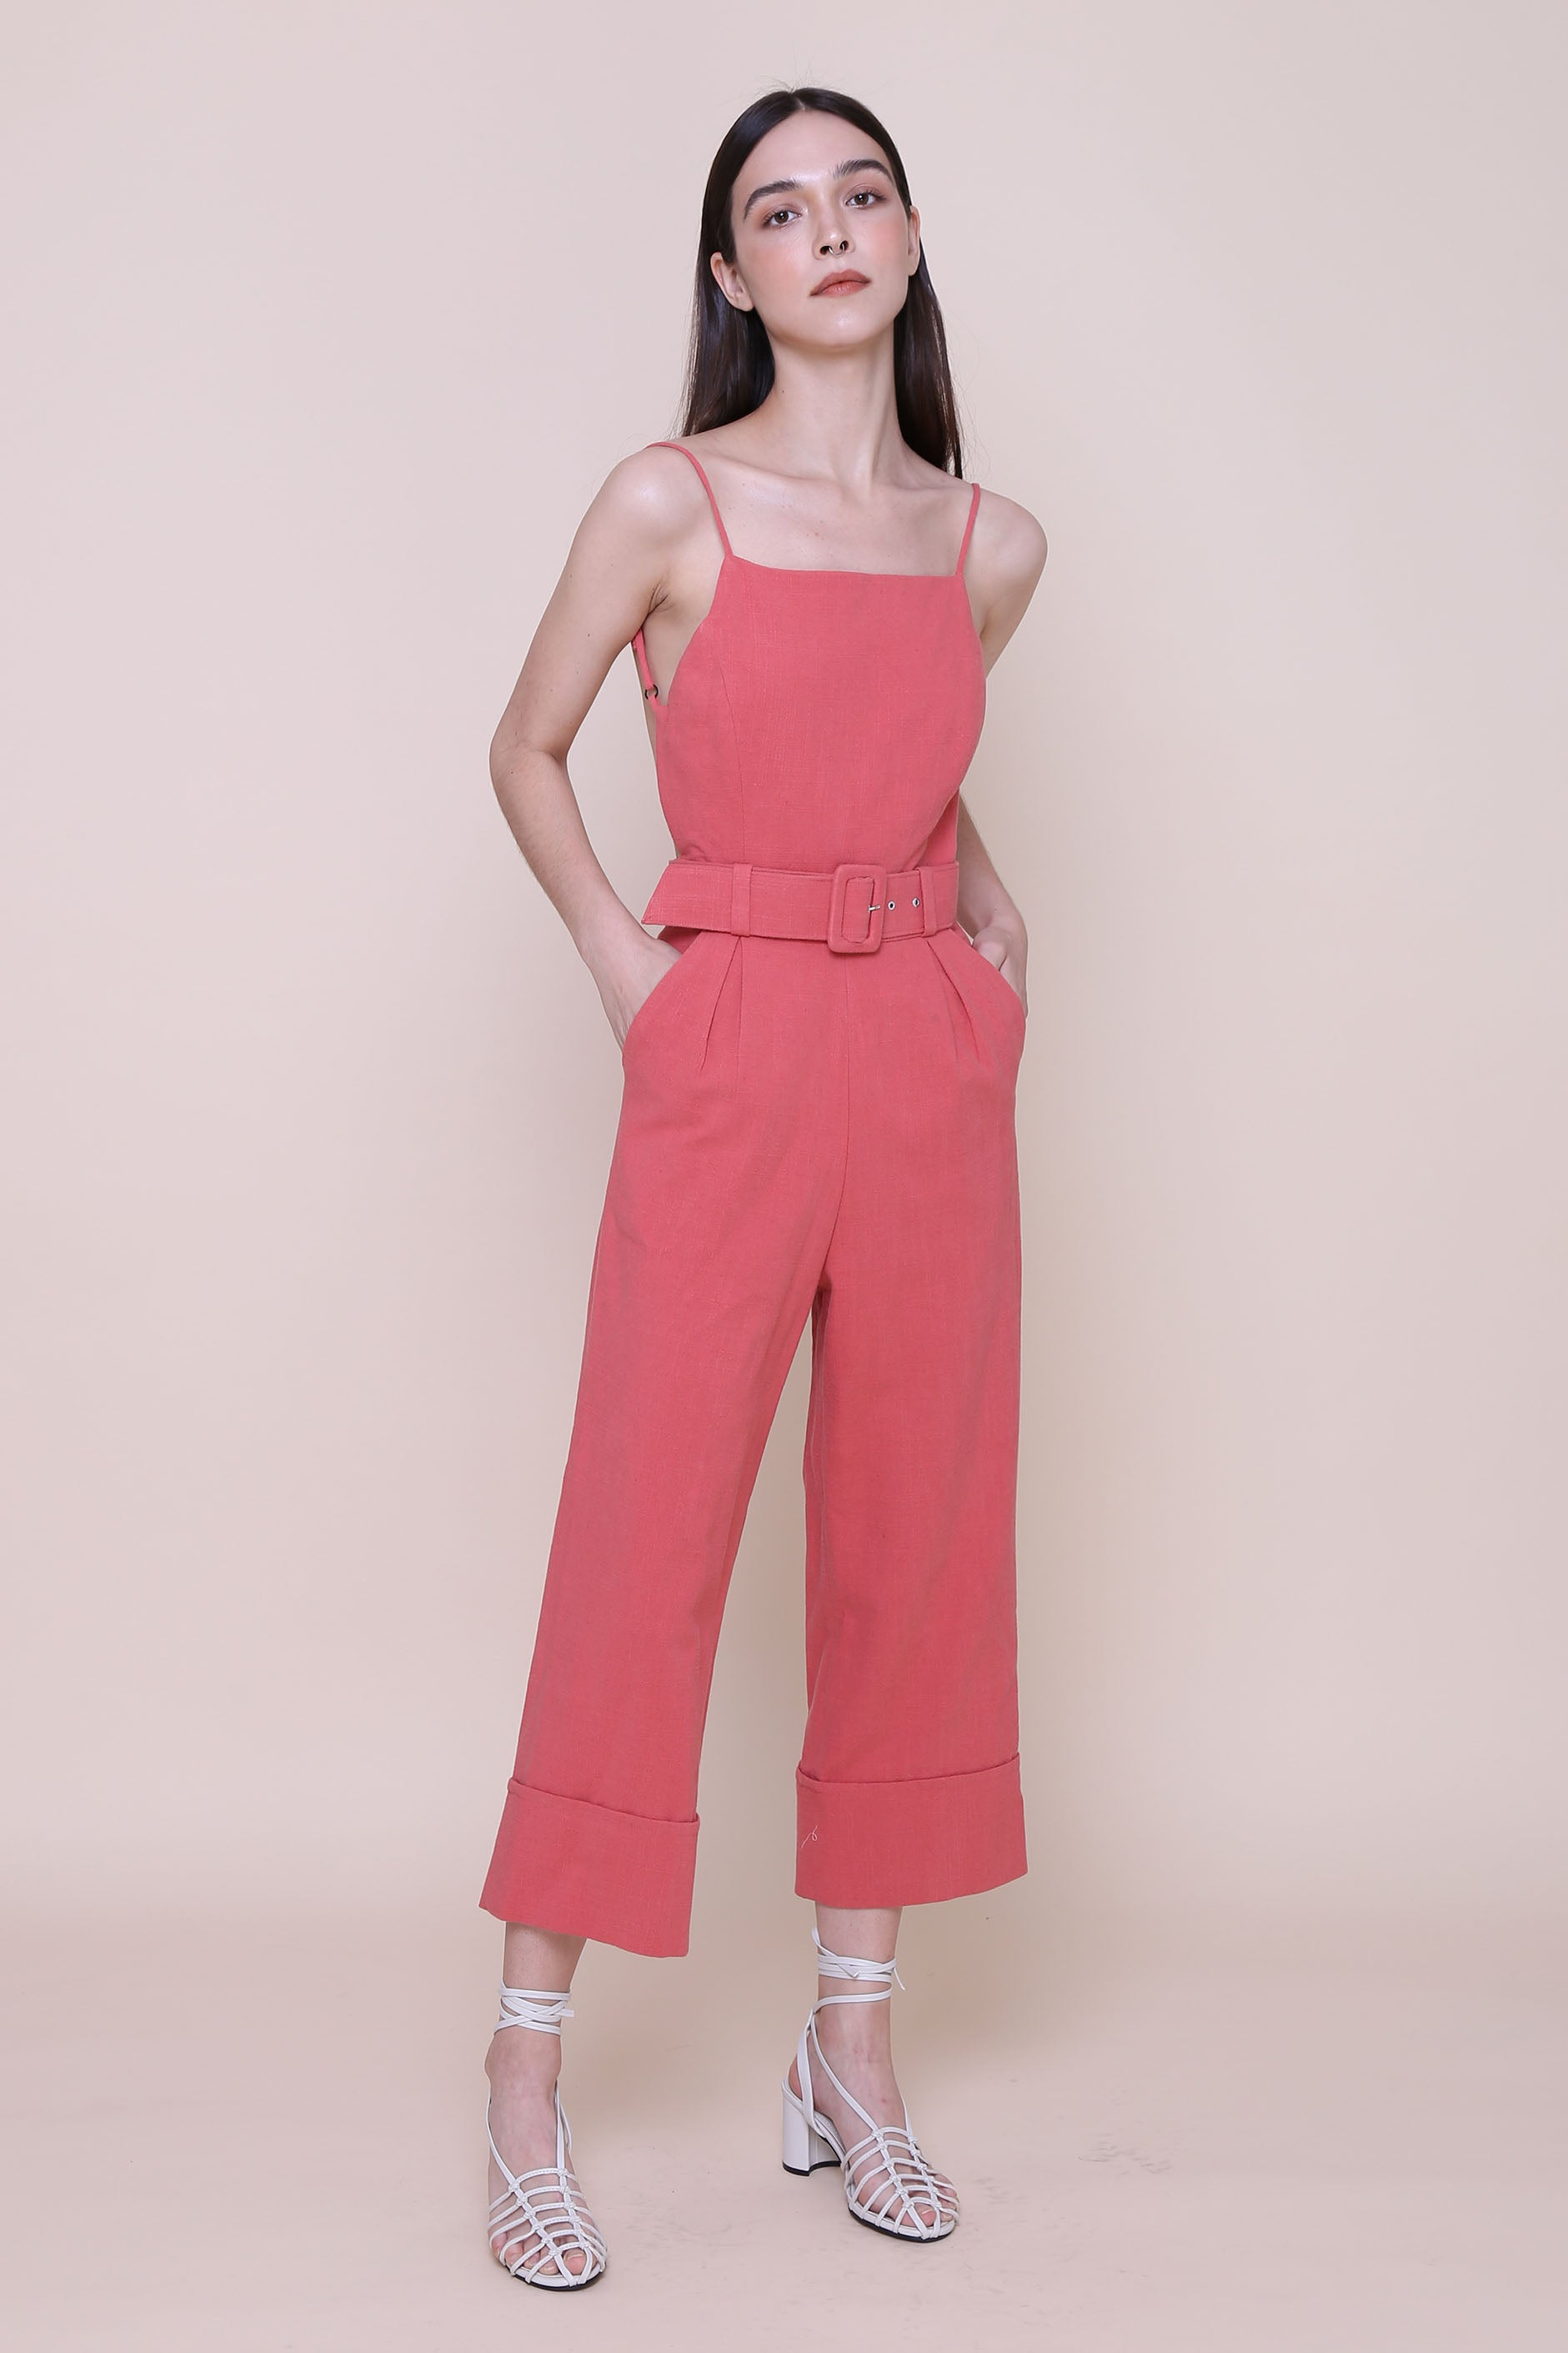 SOME LIKE IT HOT | Backless Pinafore Jumpsuits In Vintage Red With Buckle Belt